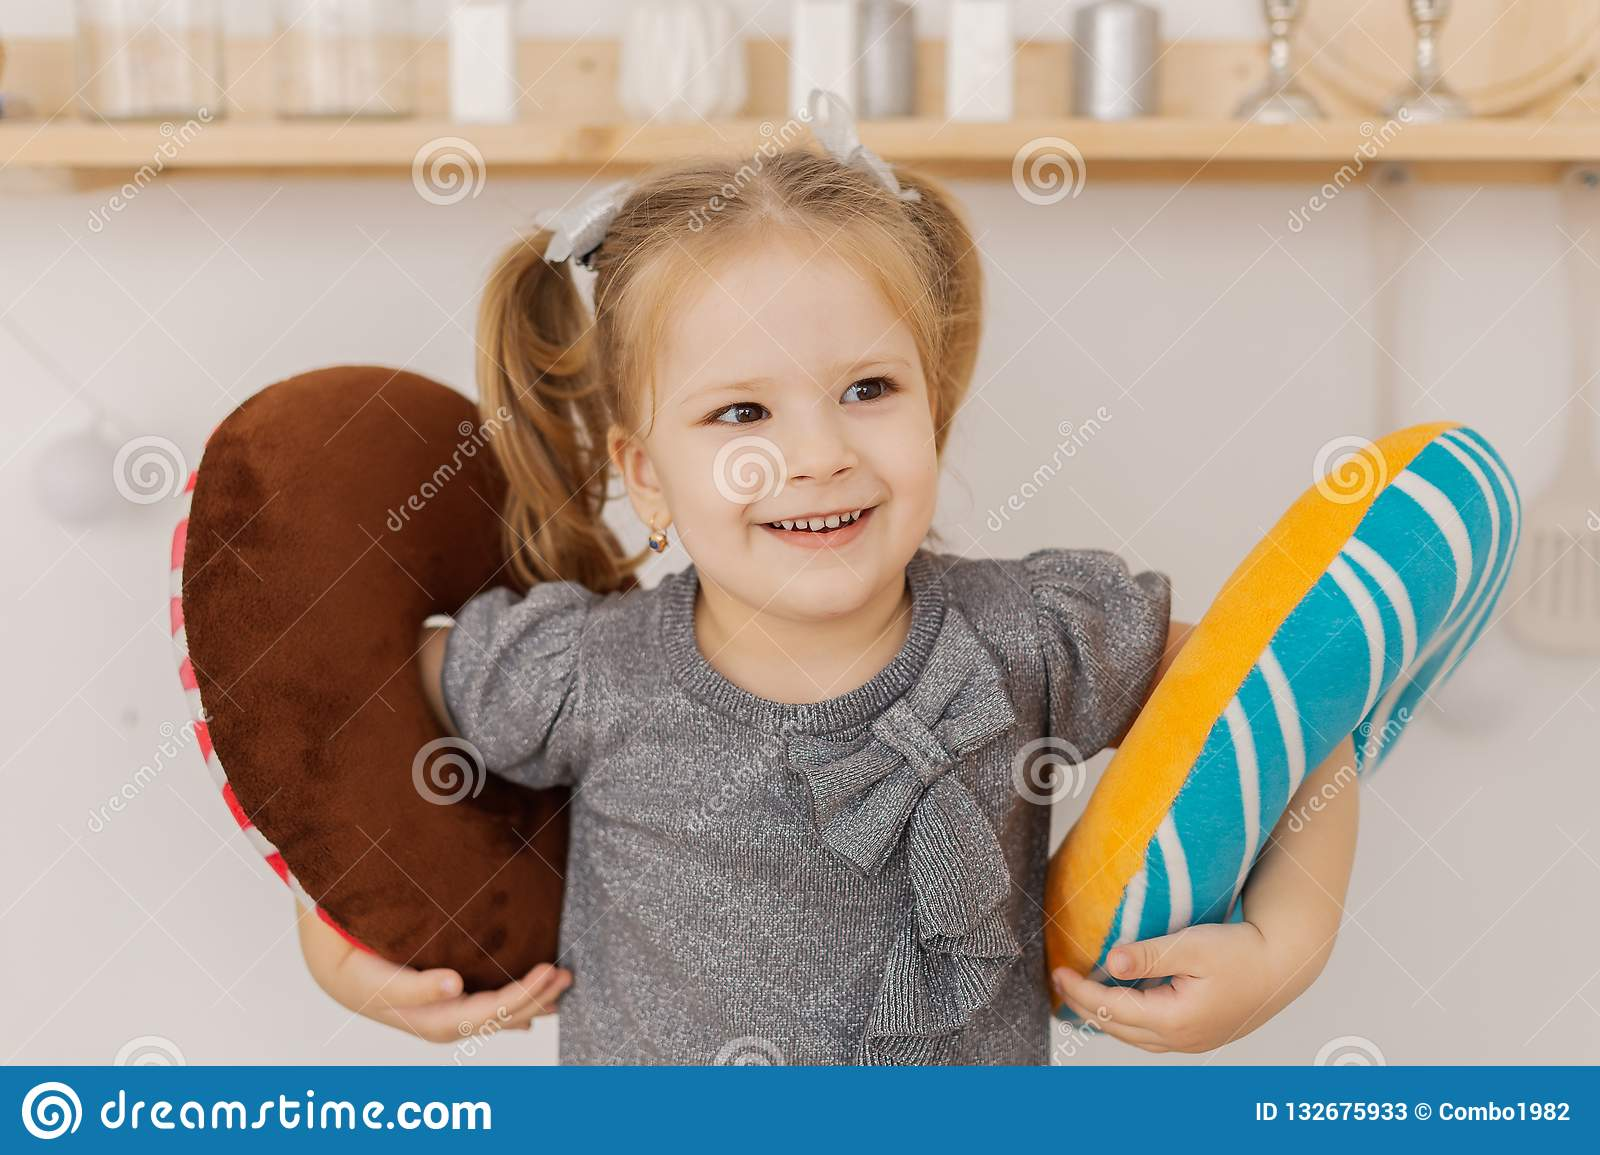 Little beautiful girl playing in the kitchen with colorful toys.